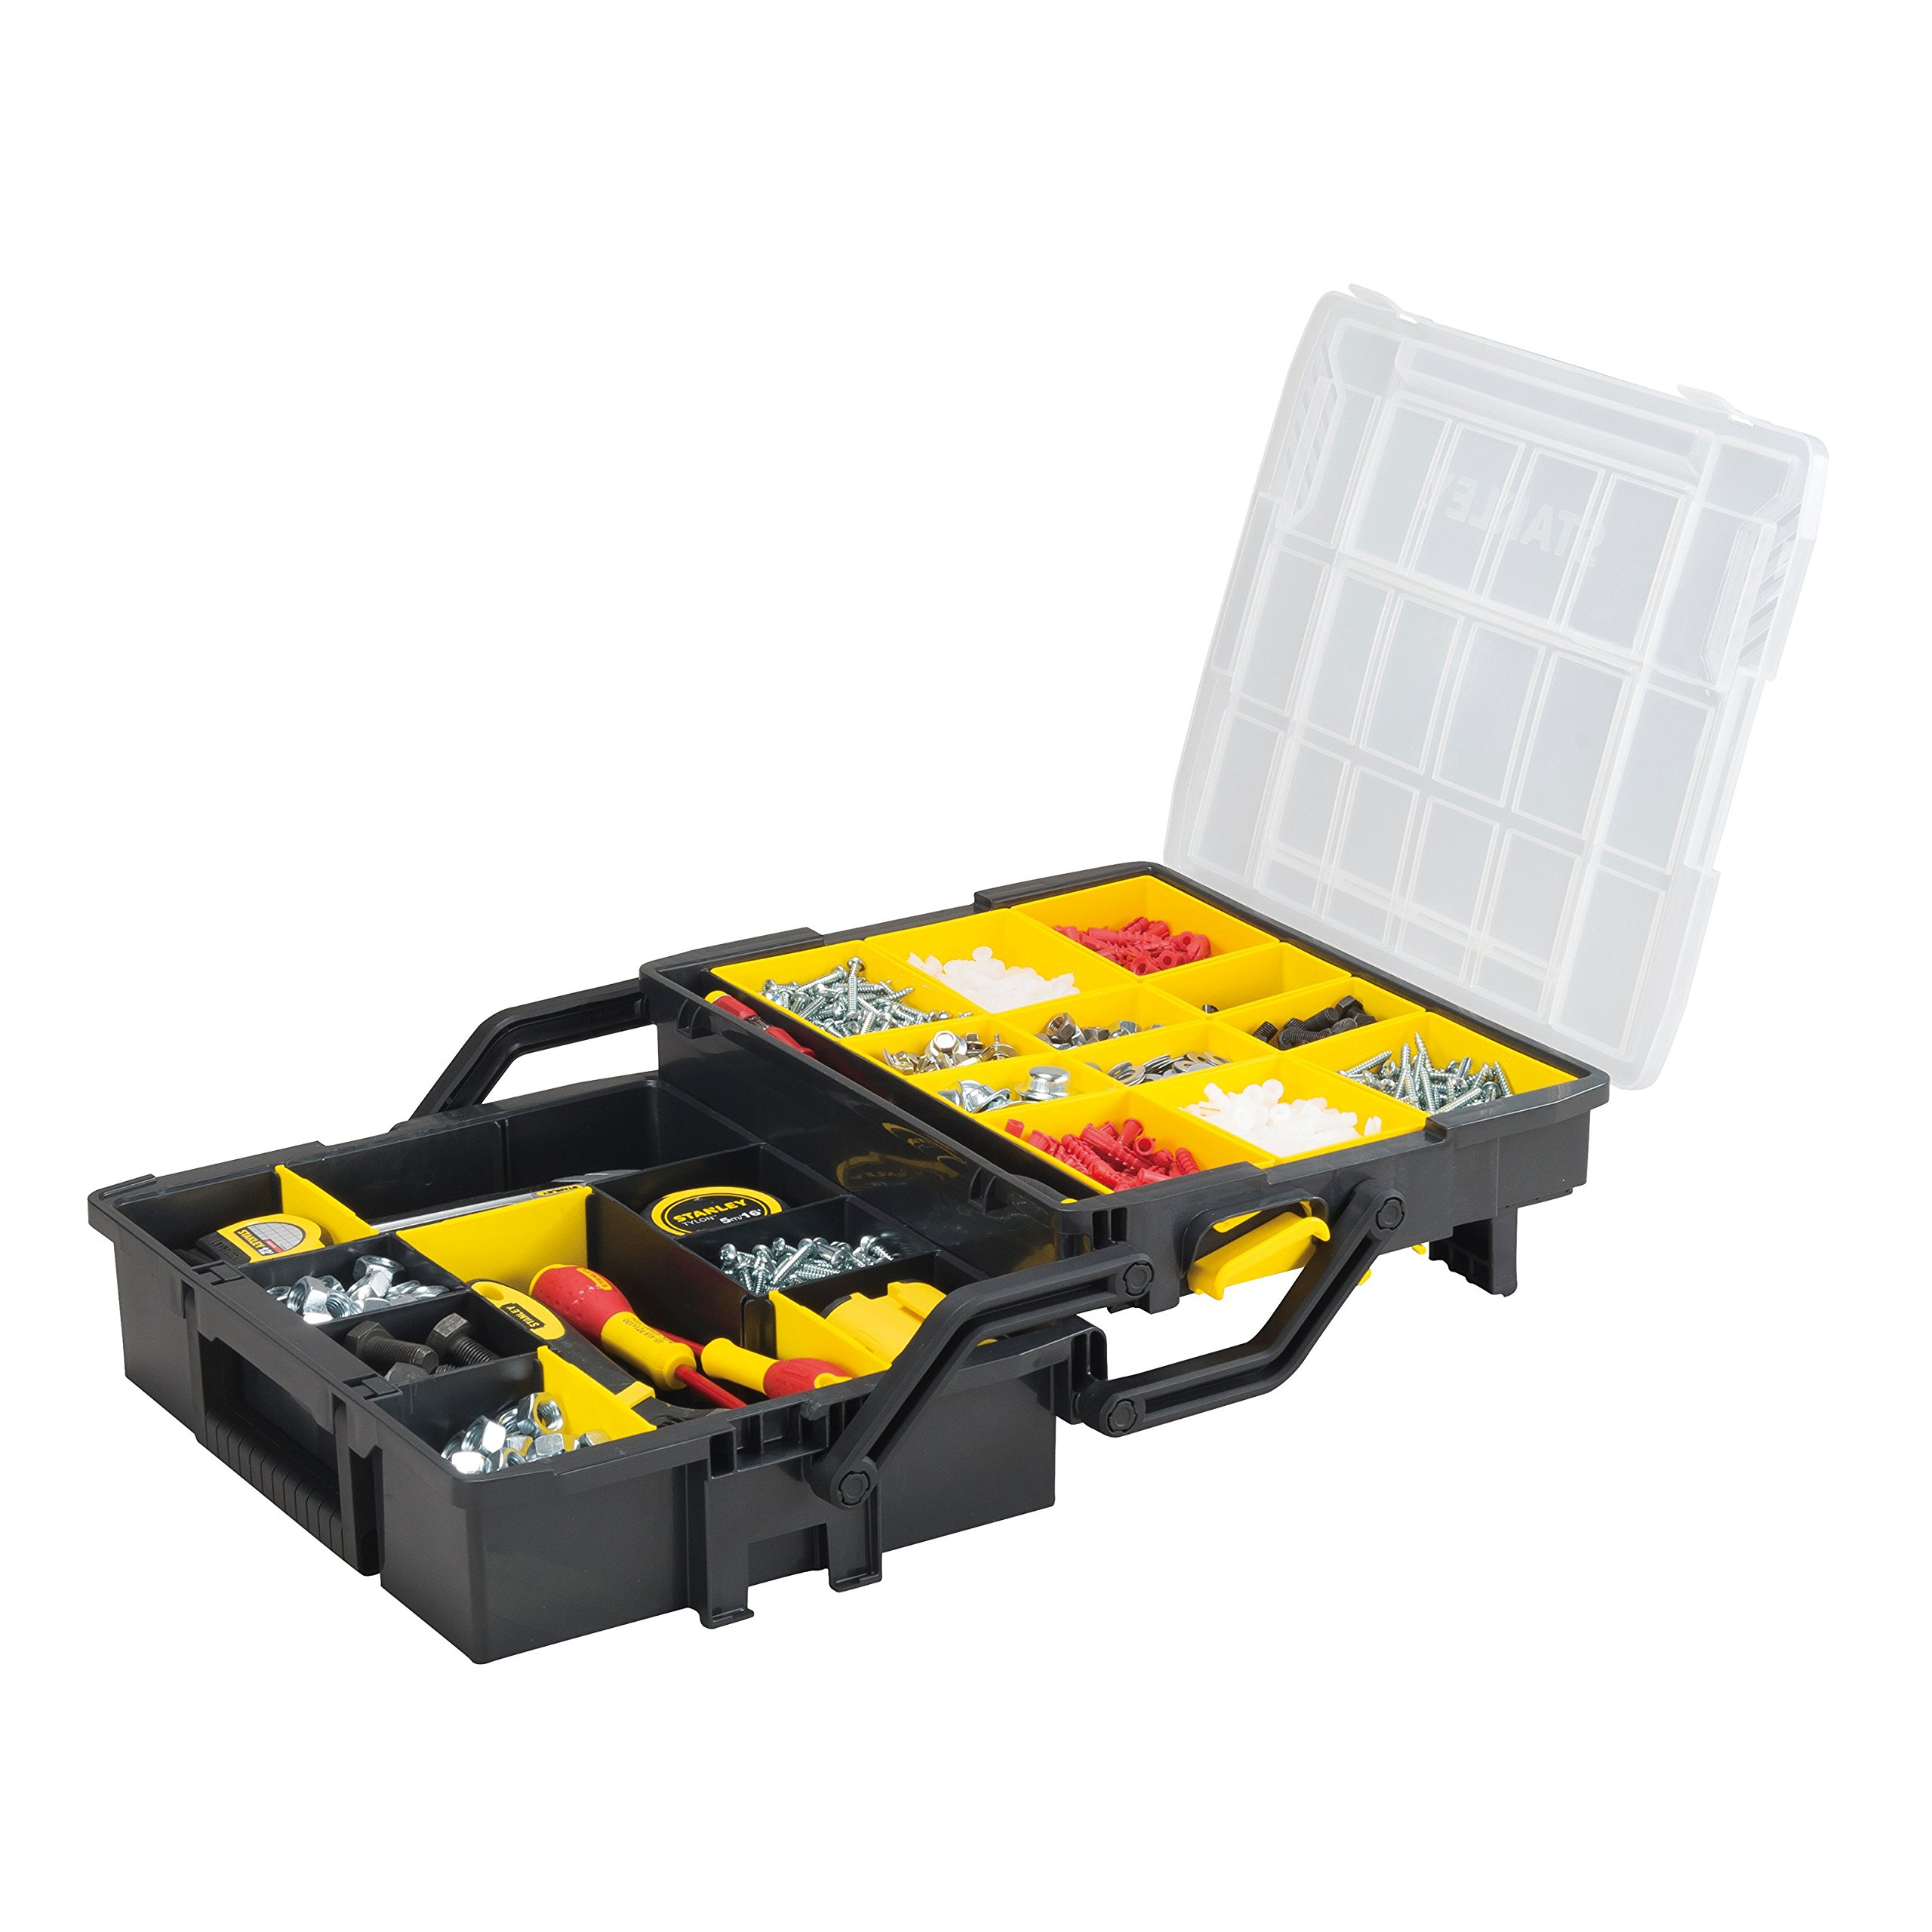 Stanley Tools and Consumer Storage STST14028 MultiLevel Organizer